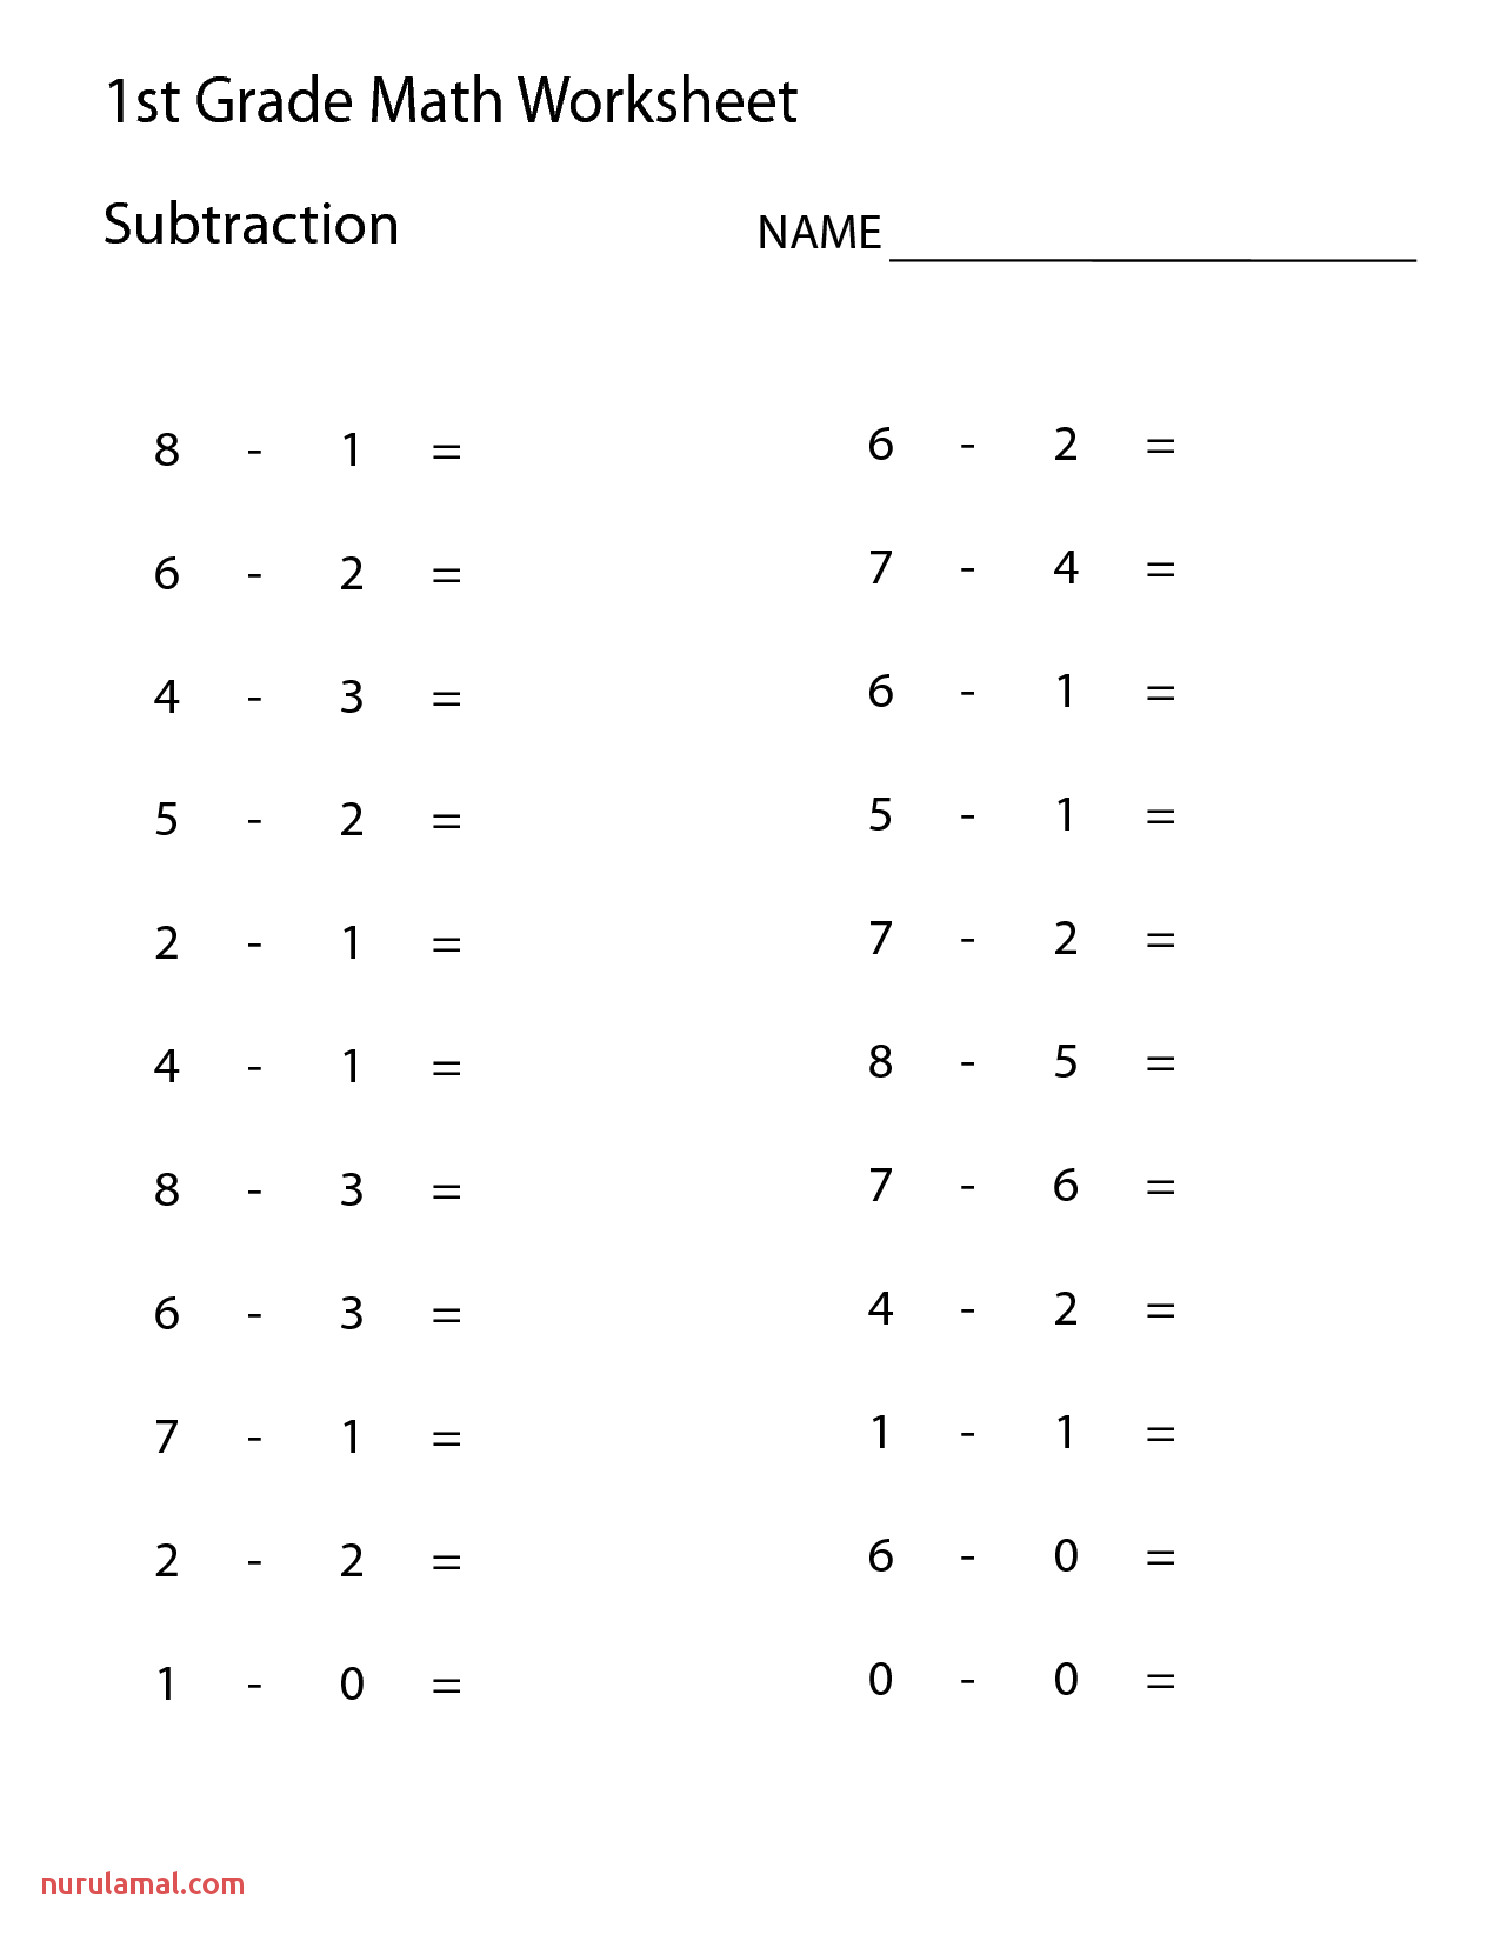 Domino Math Worksheets Collection solutions First Grade